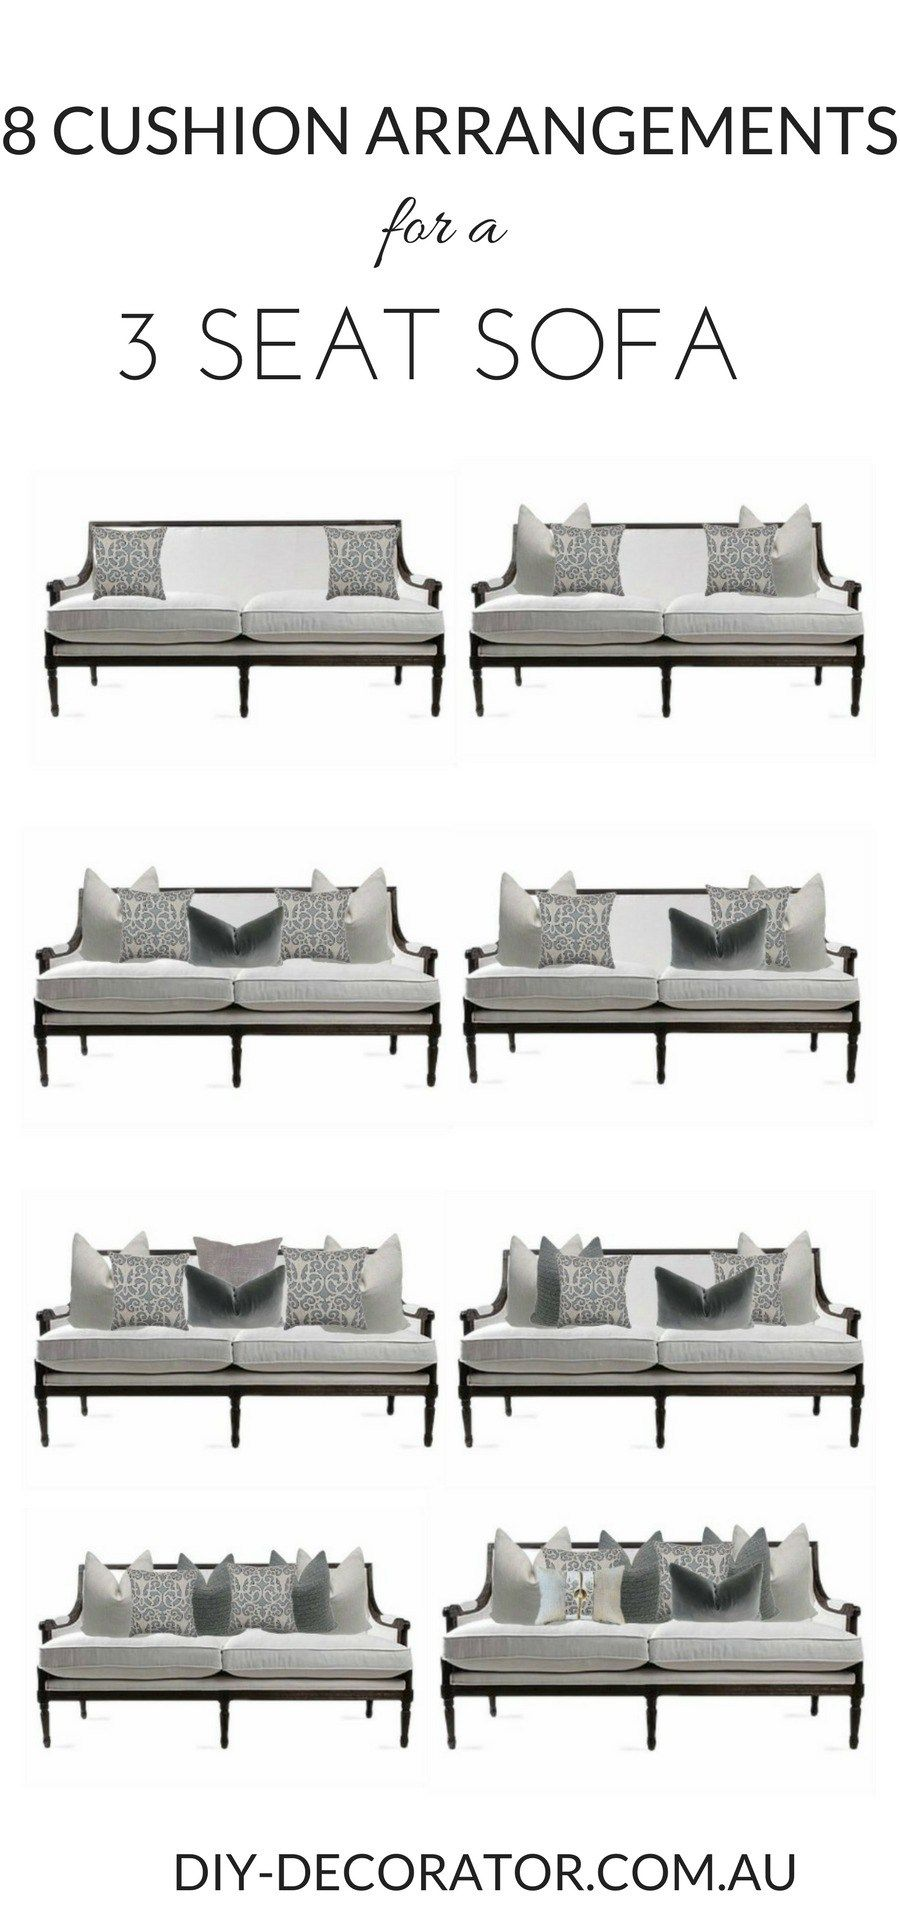 Cushion Arrangements For A 3 Seat Sofa How Many Cushions Should You Have On And To Arrange Them Here Are 8 Simple Pillow Styling Recipes